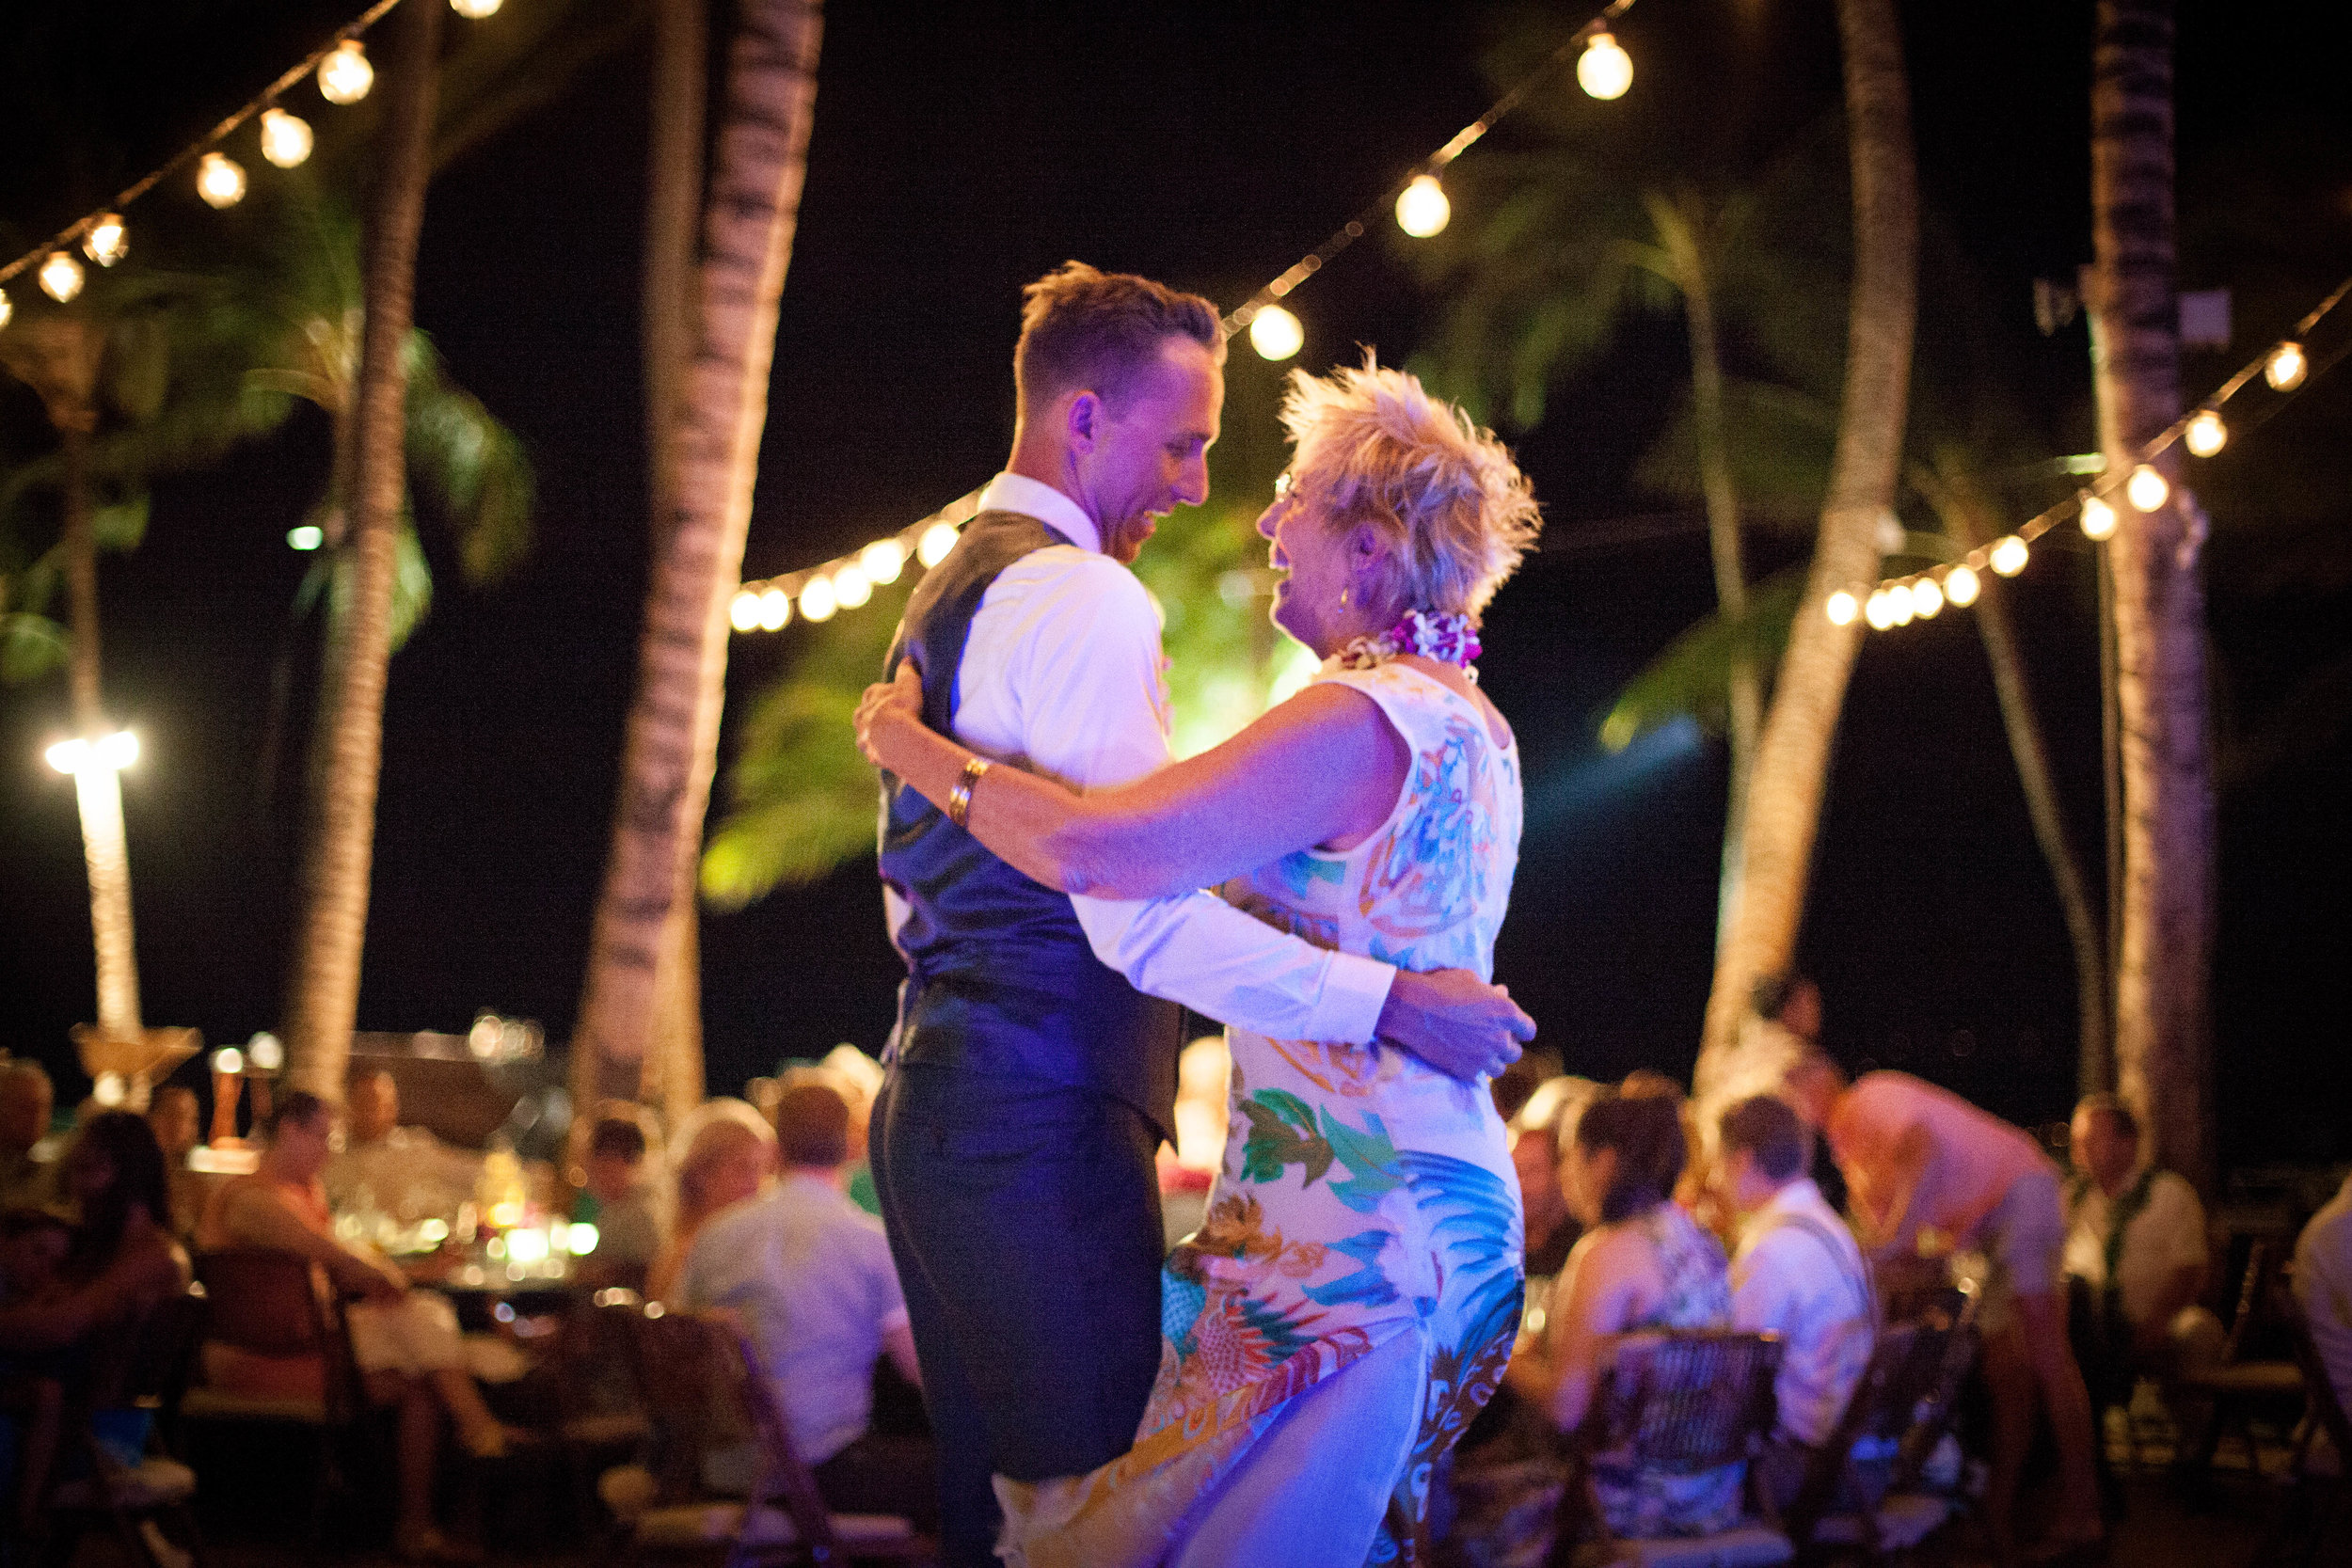 big island hawaii fairmont orchid beach wedding © kelilina photography 20170812210843-1.jpg